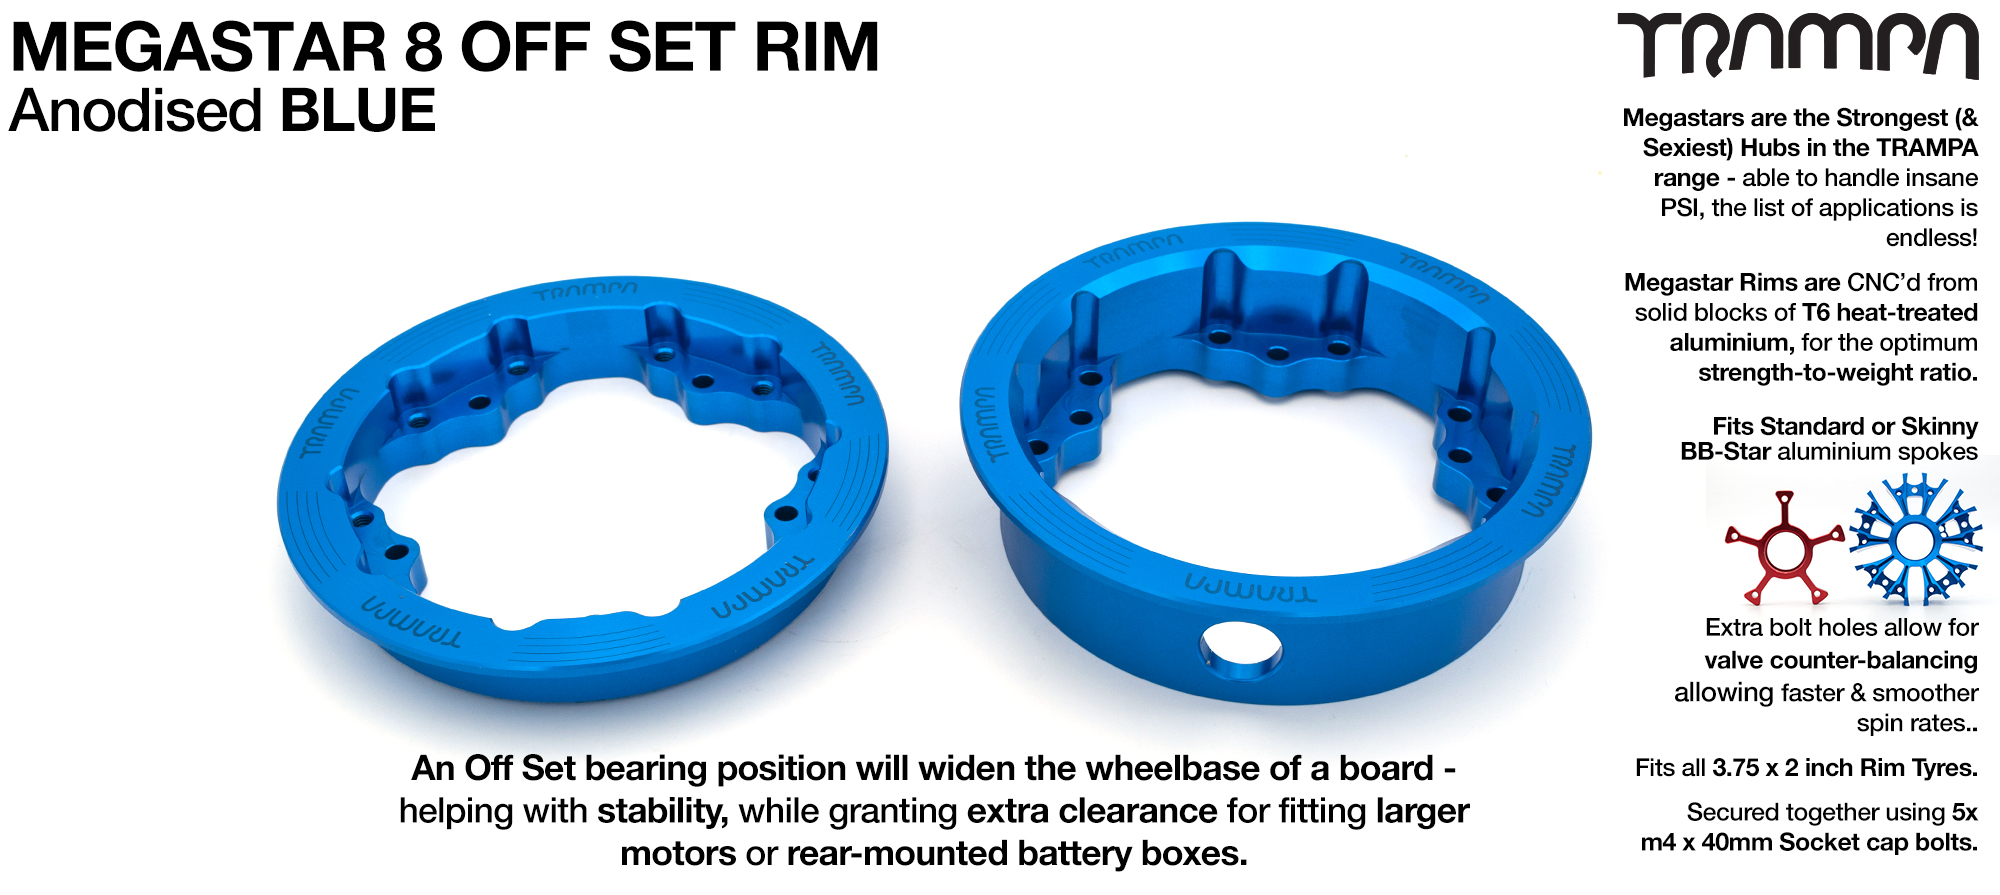 8 Inch MEGASTAR Rim OFF SET - Anodised BLUE - Pro OFF-SET Superstars will widen your wheel base by 15mm